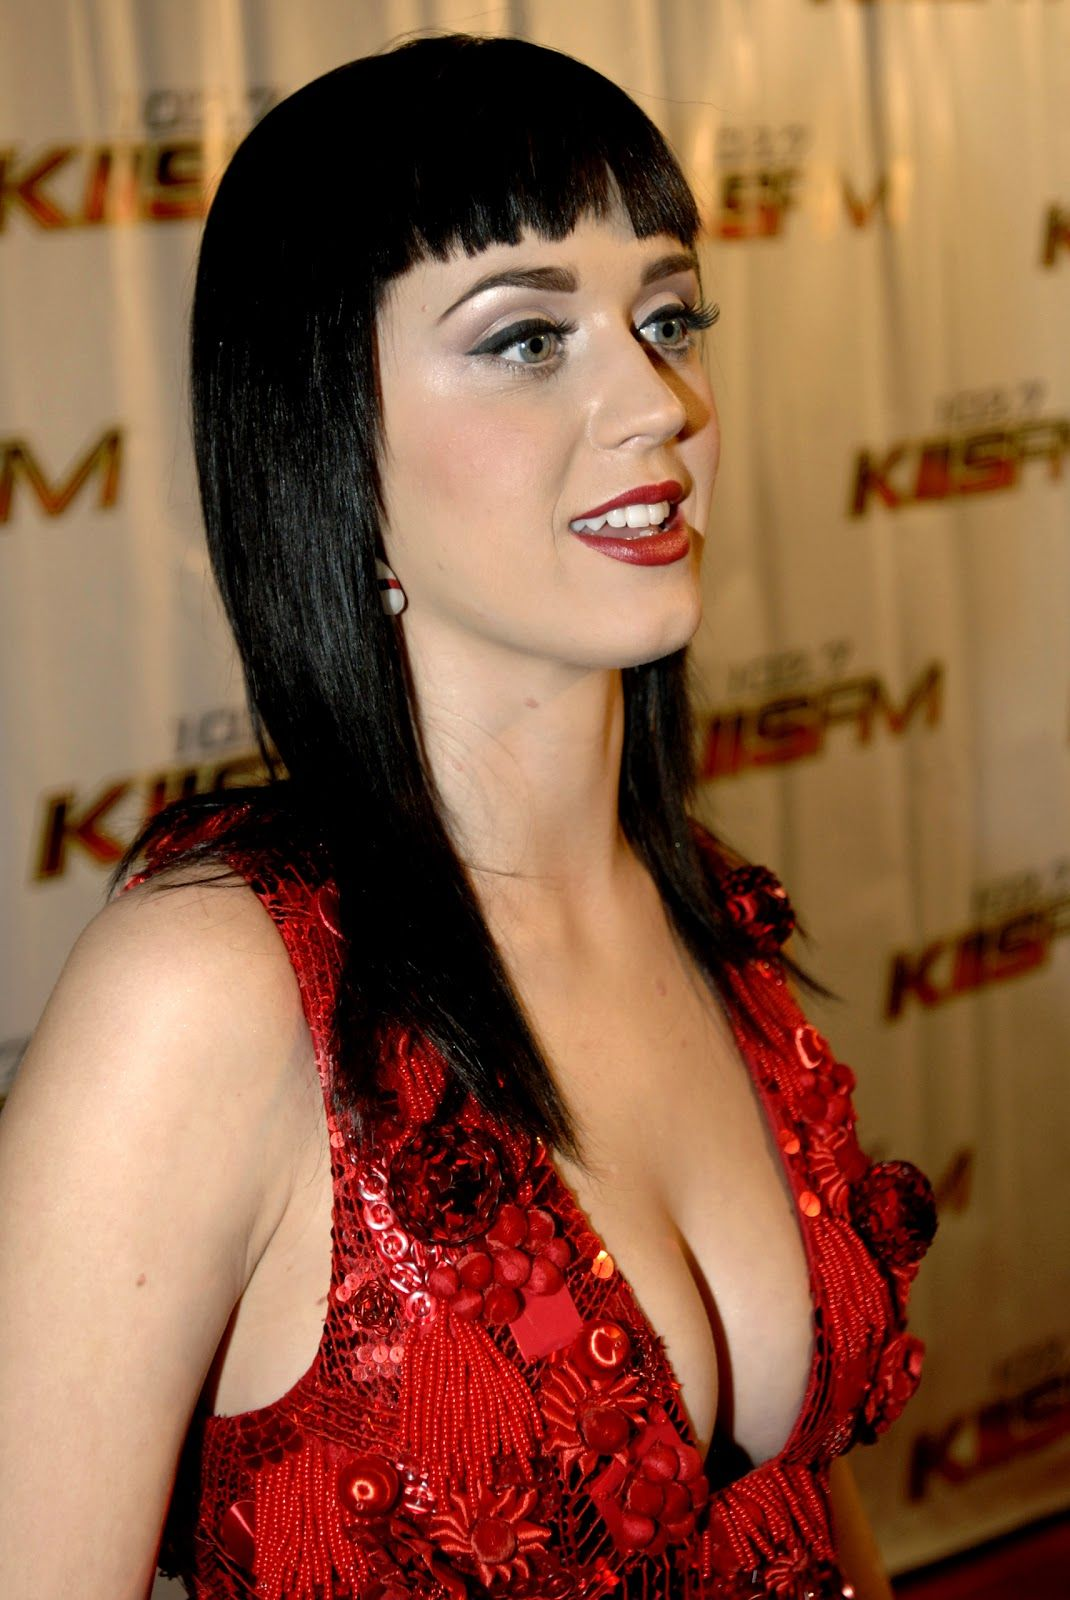 Properties Katy perry cleavage